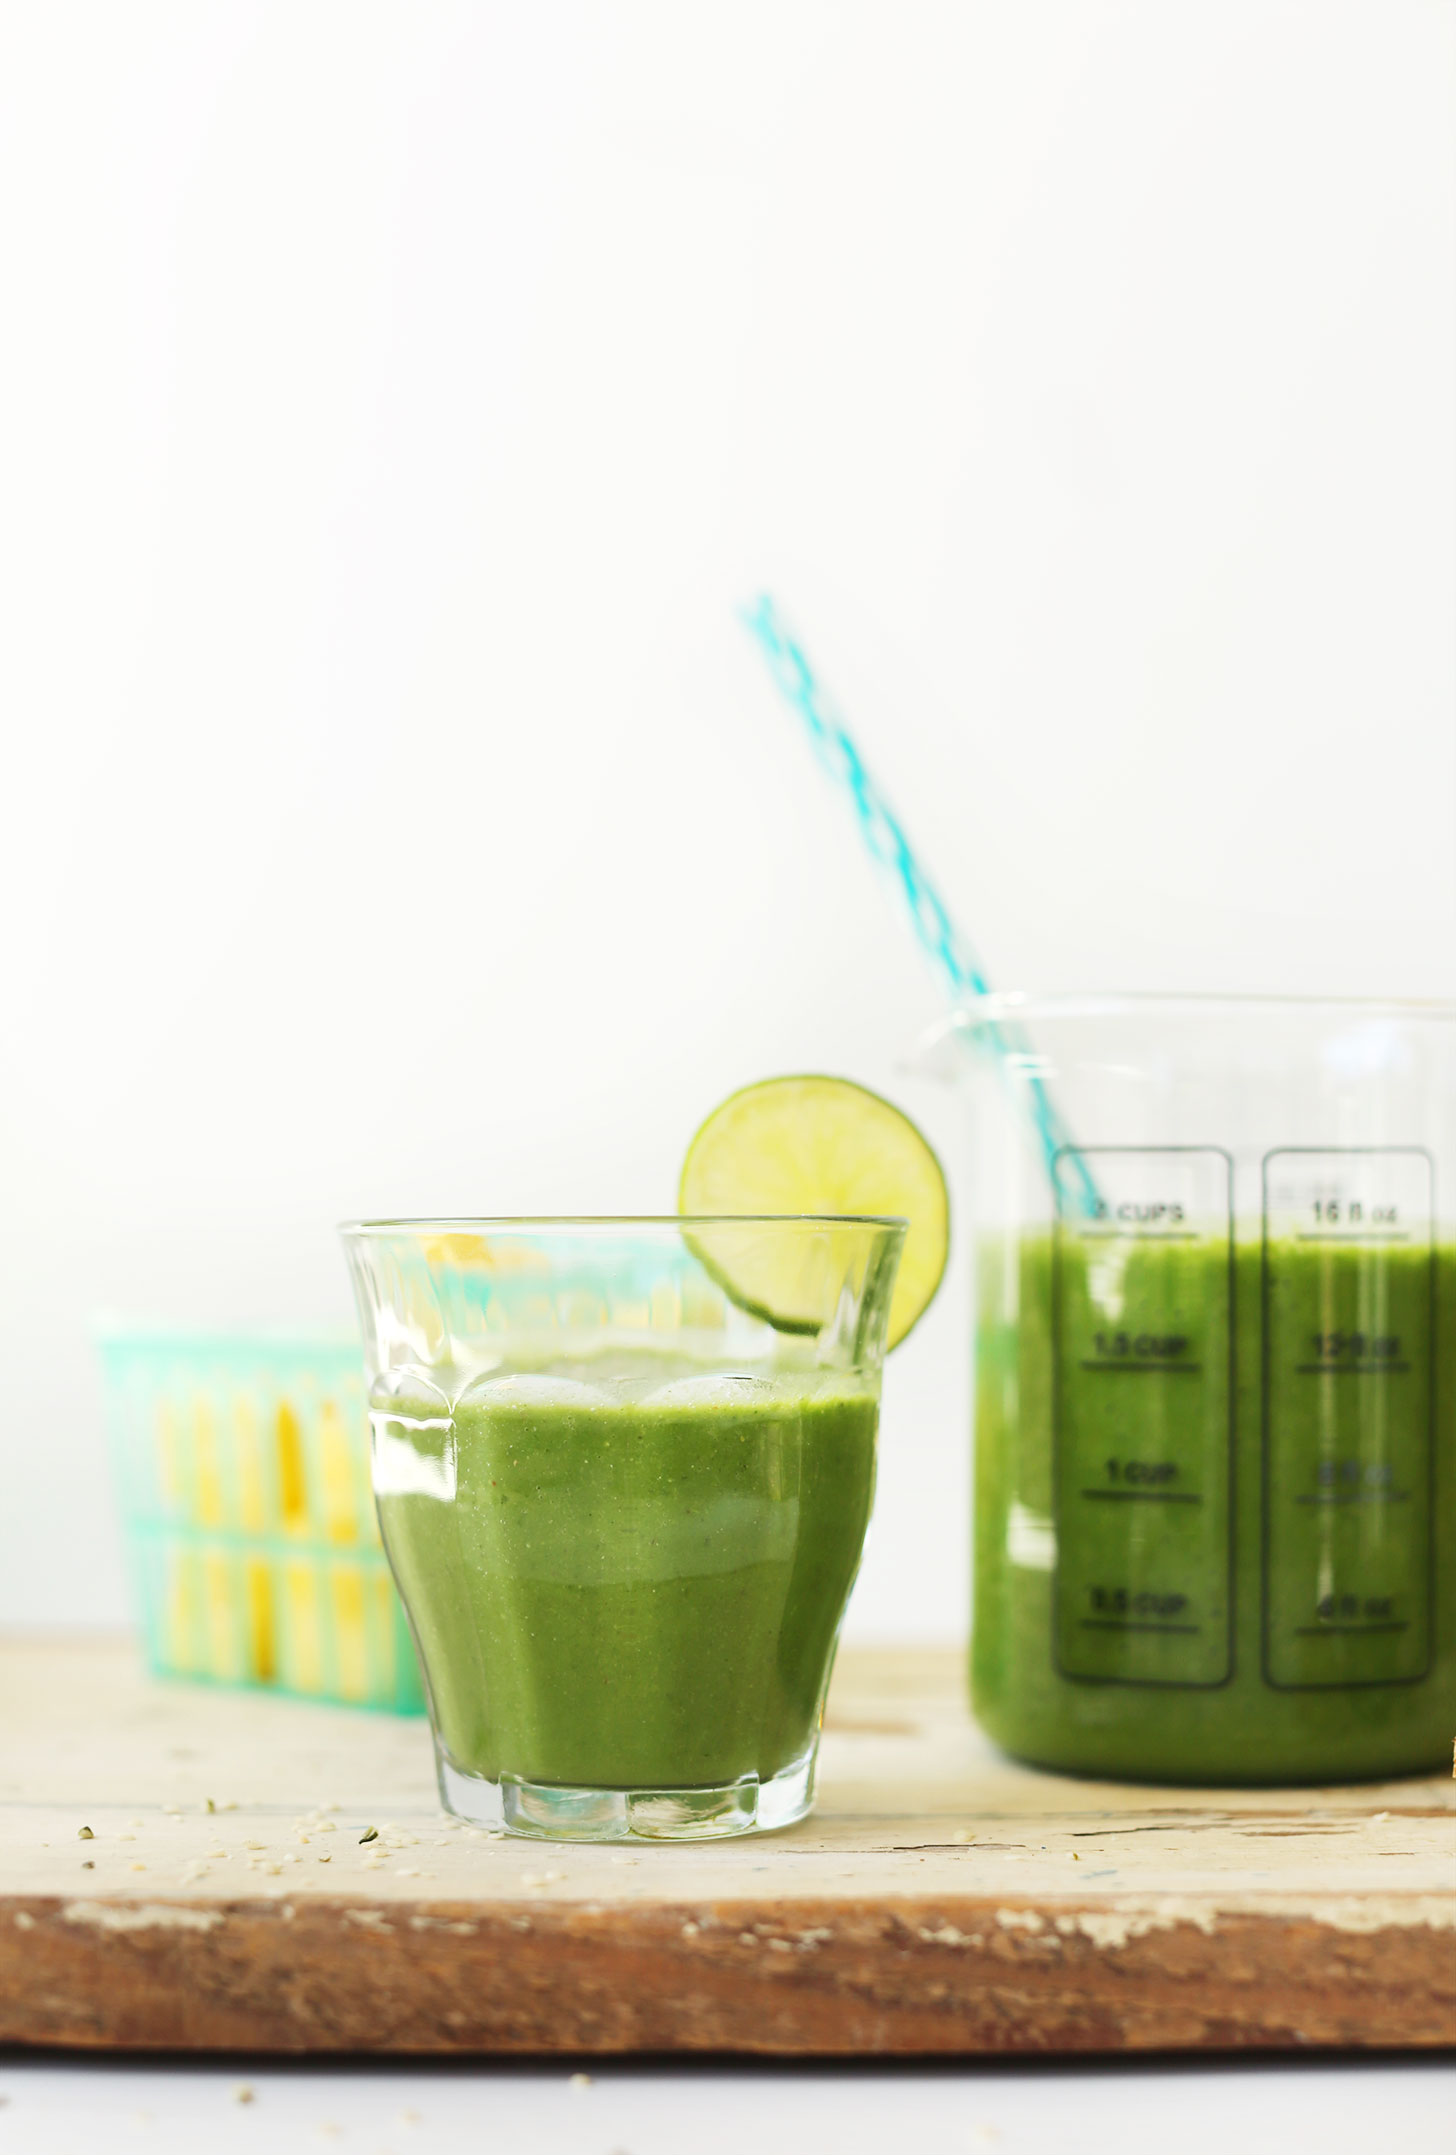 Serving glass filled with Ginger Colada Green Smoothie with a slice of lime on the rim